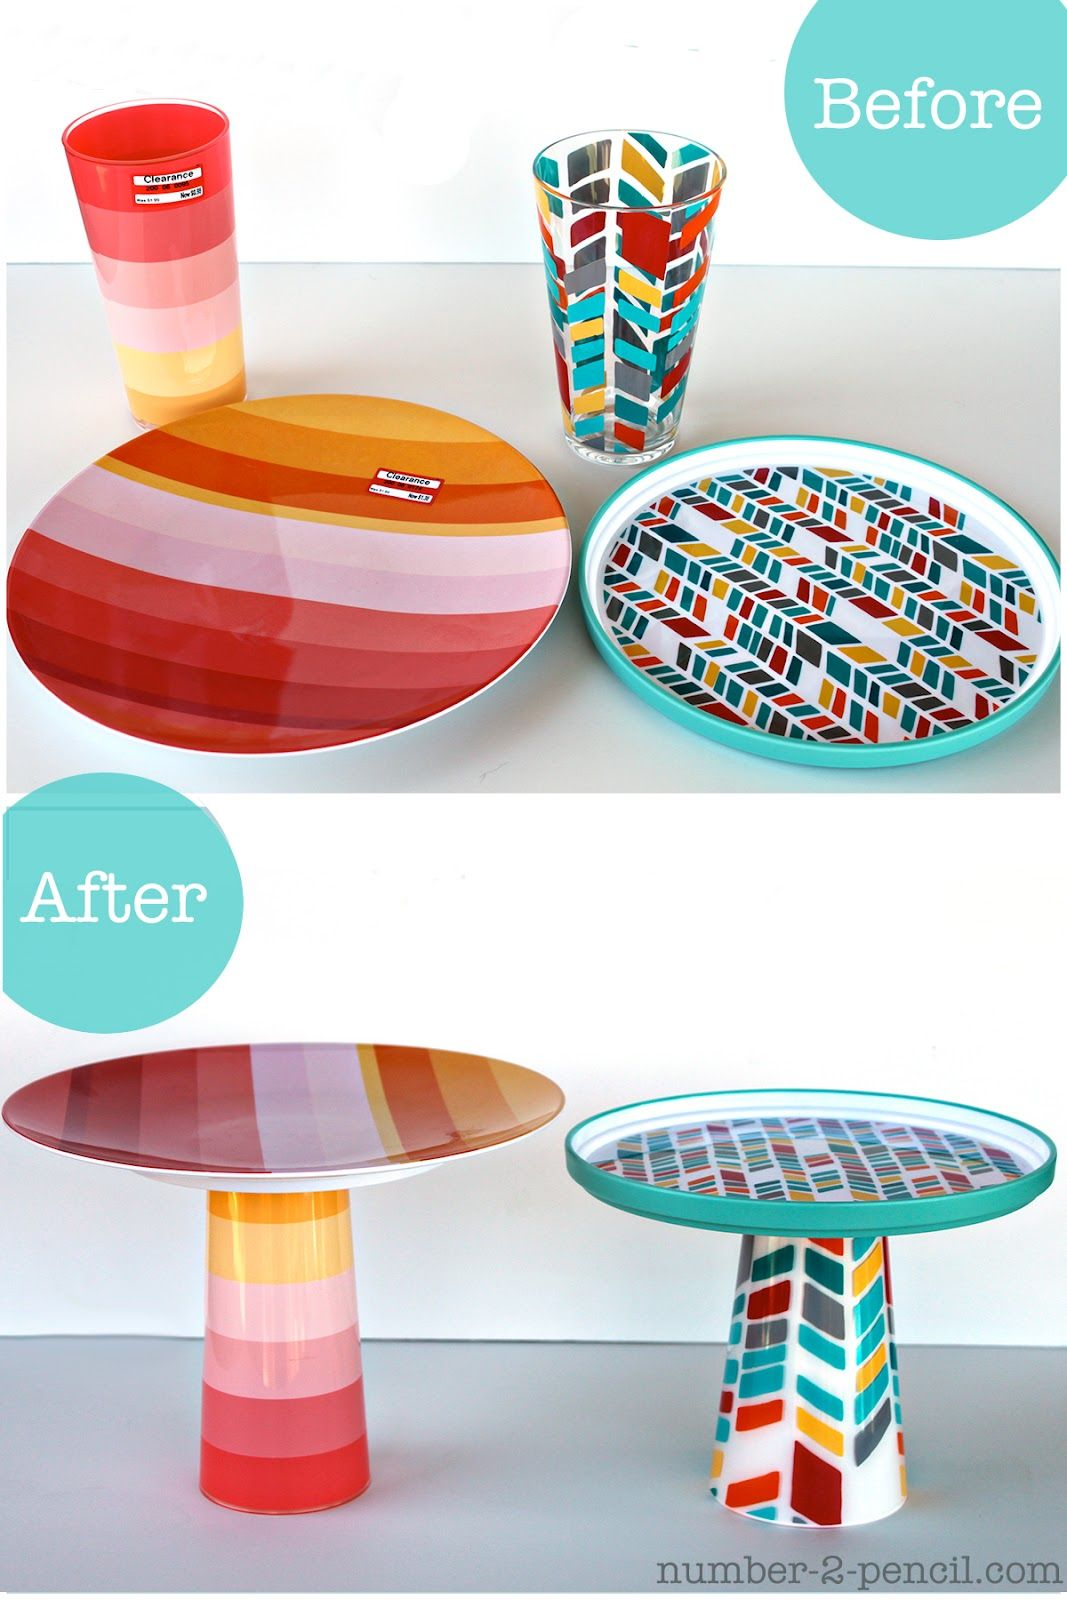 DIY Fun cake stands from outdoor plates and cups  sc 1 st  Pinterest & DIY Cake Stands | Plastic plates Cups and Cake